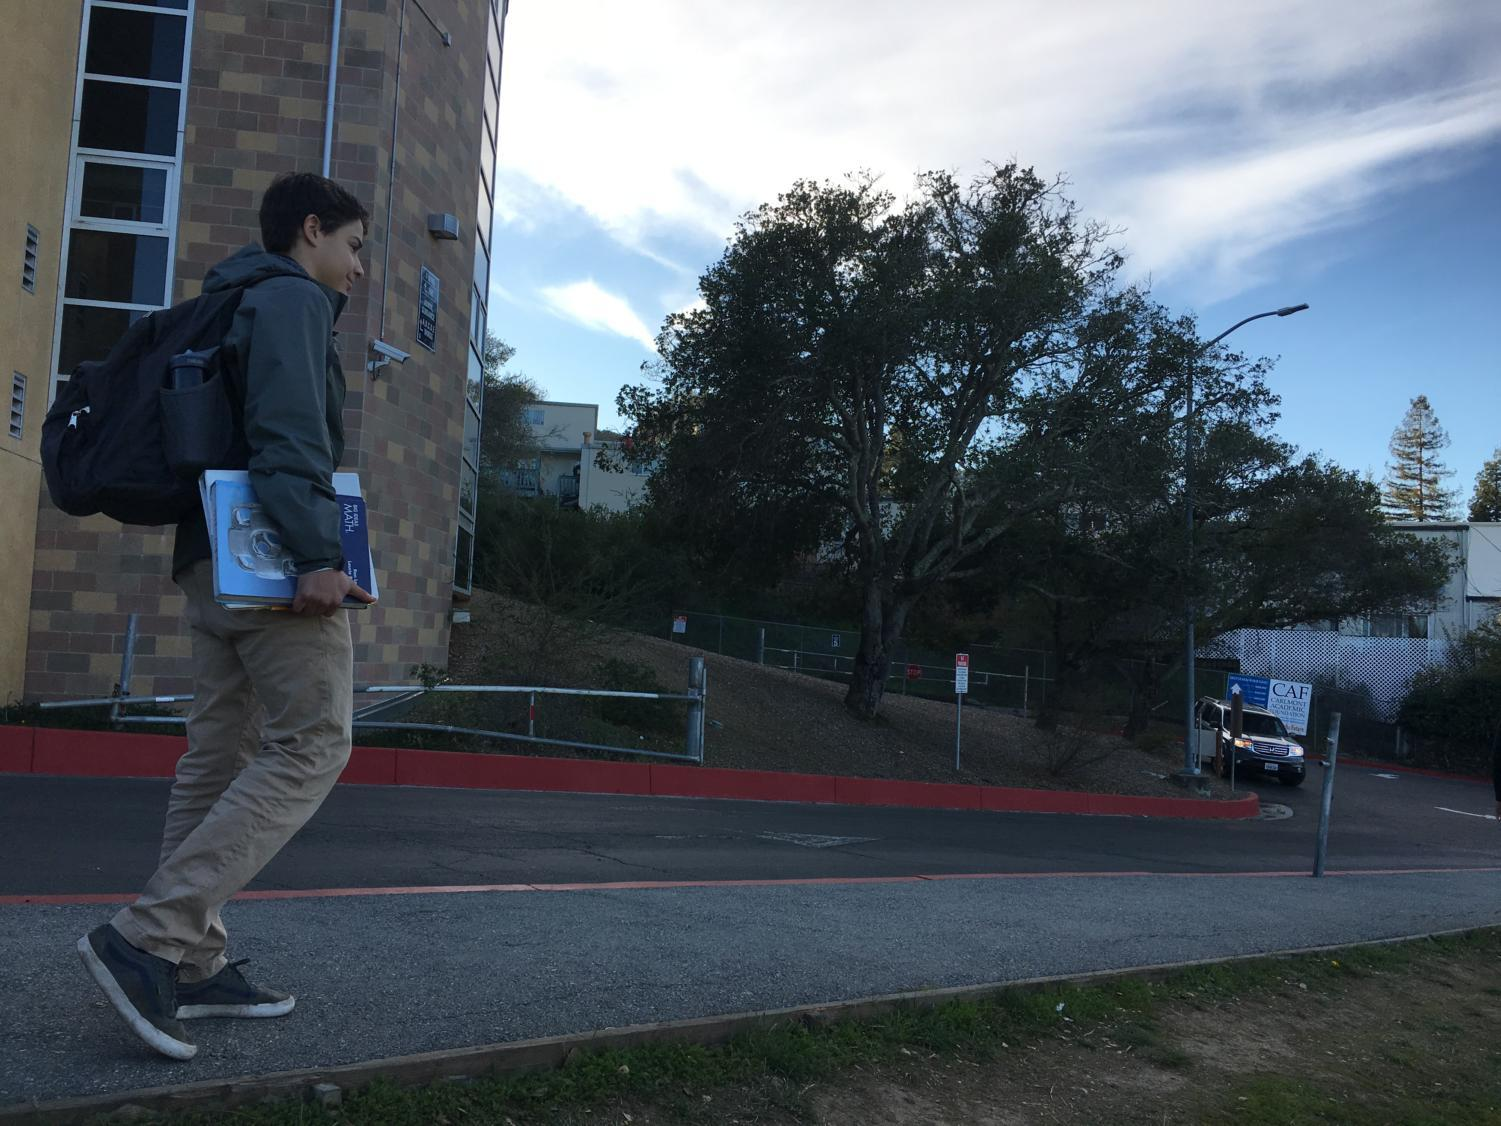 Tomas Ronderos, a sophomore, walks from Carlmont High School with textbooks in hand, ready to prepare for the SAT and future successes.